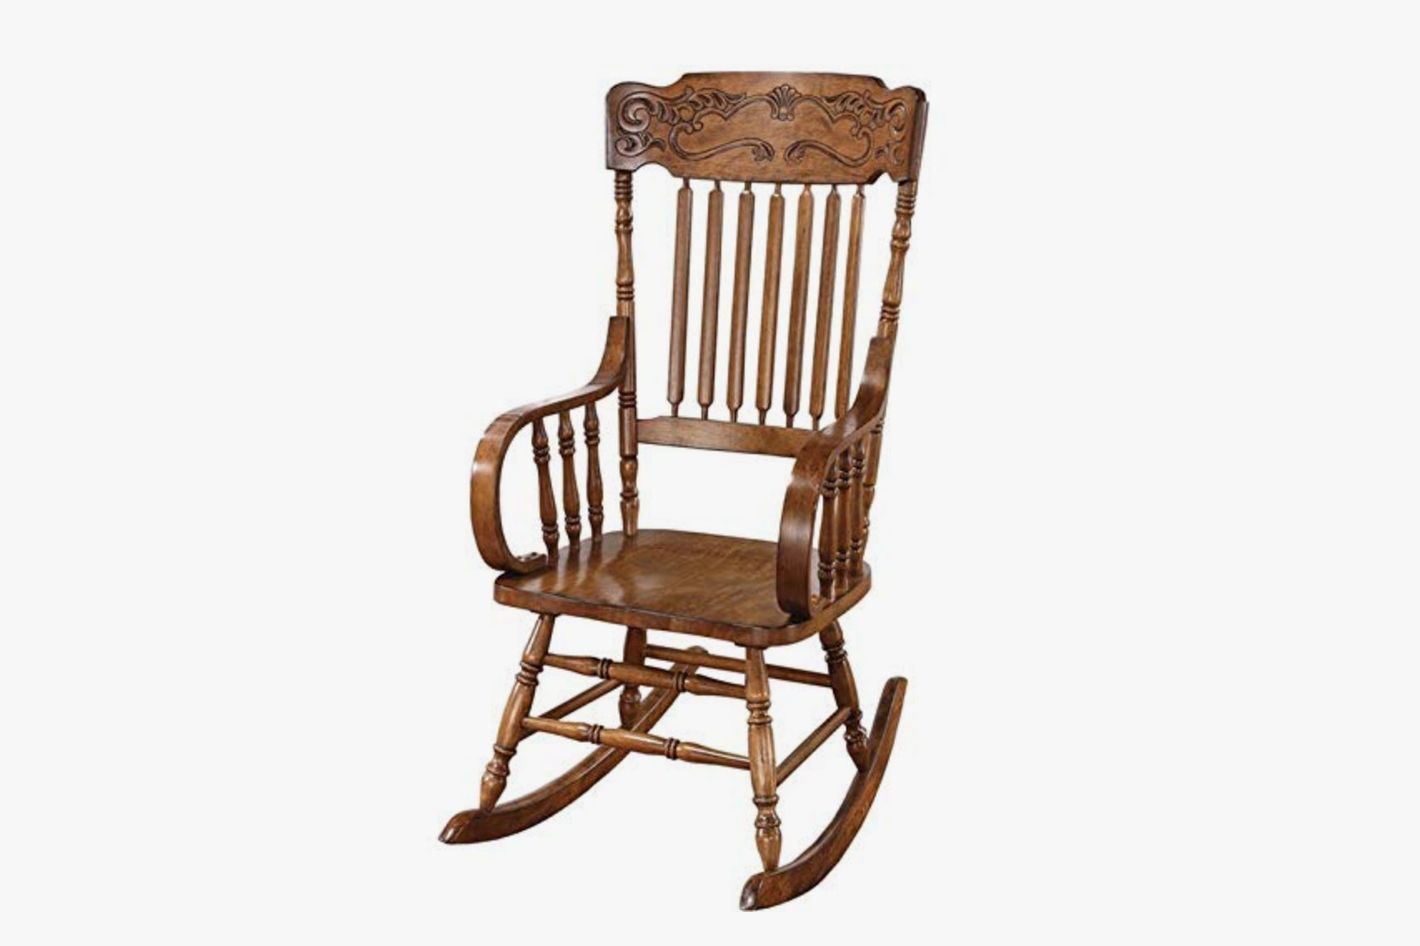 Rocking Chair With Ornamental Headrest At